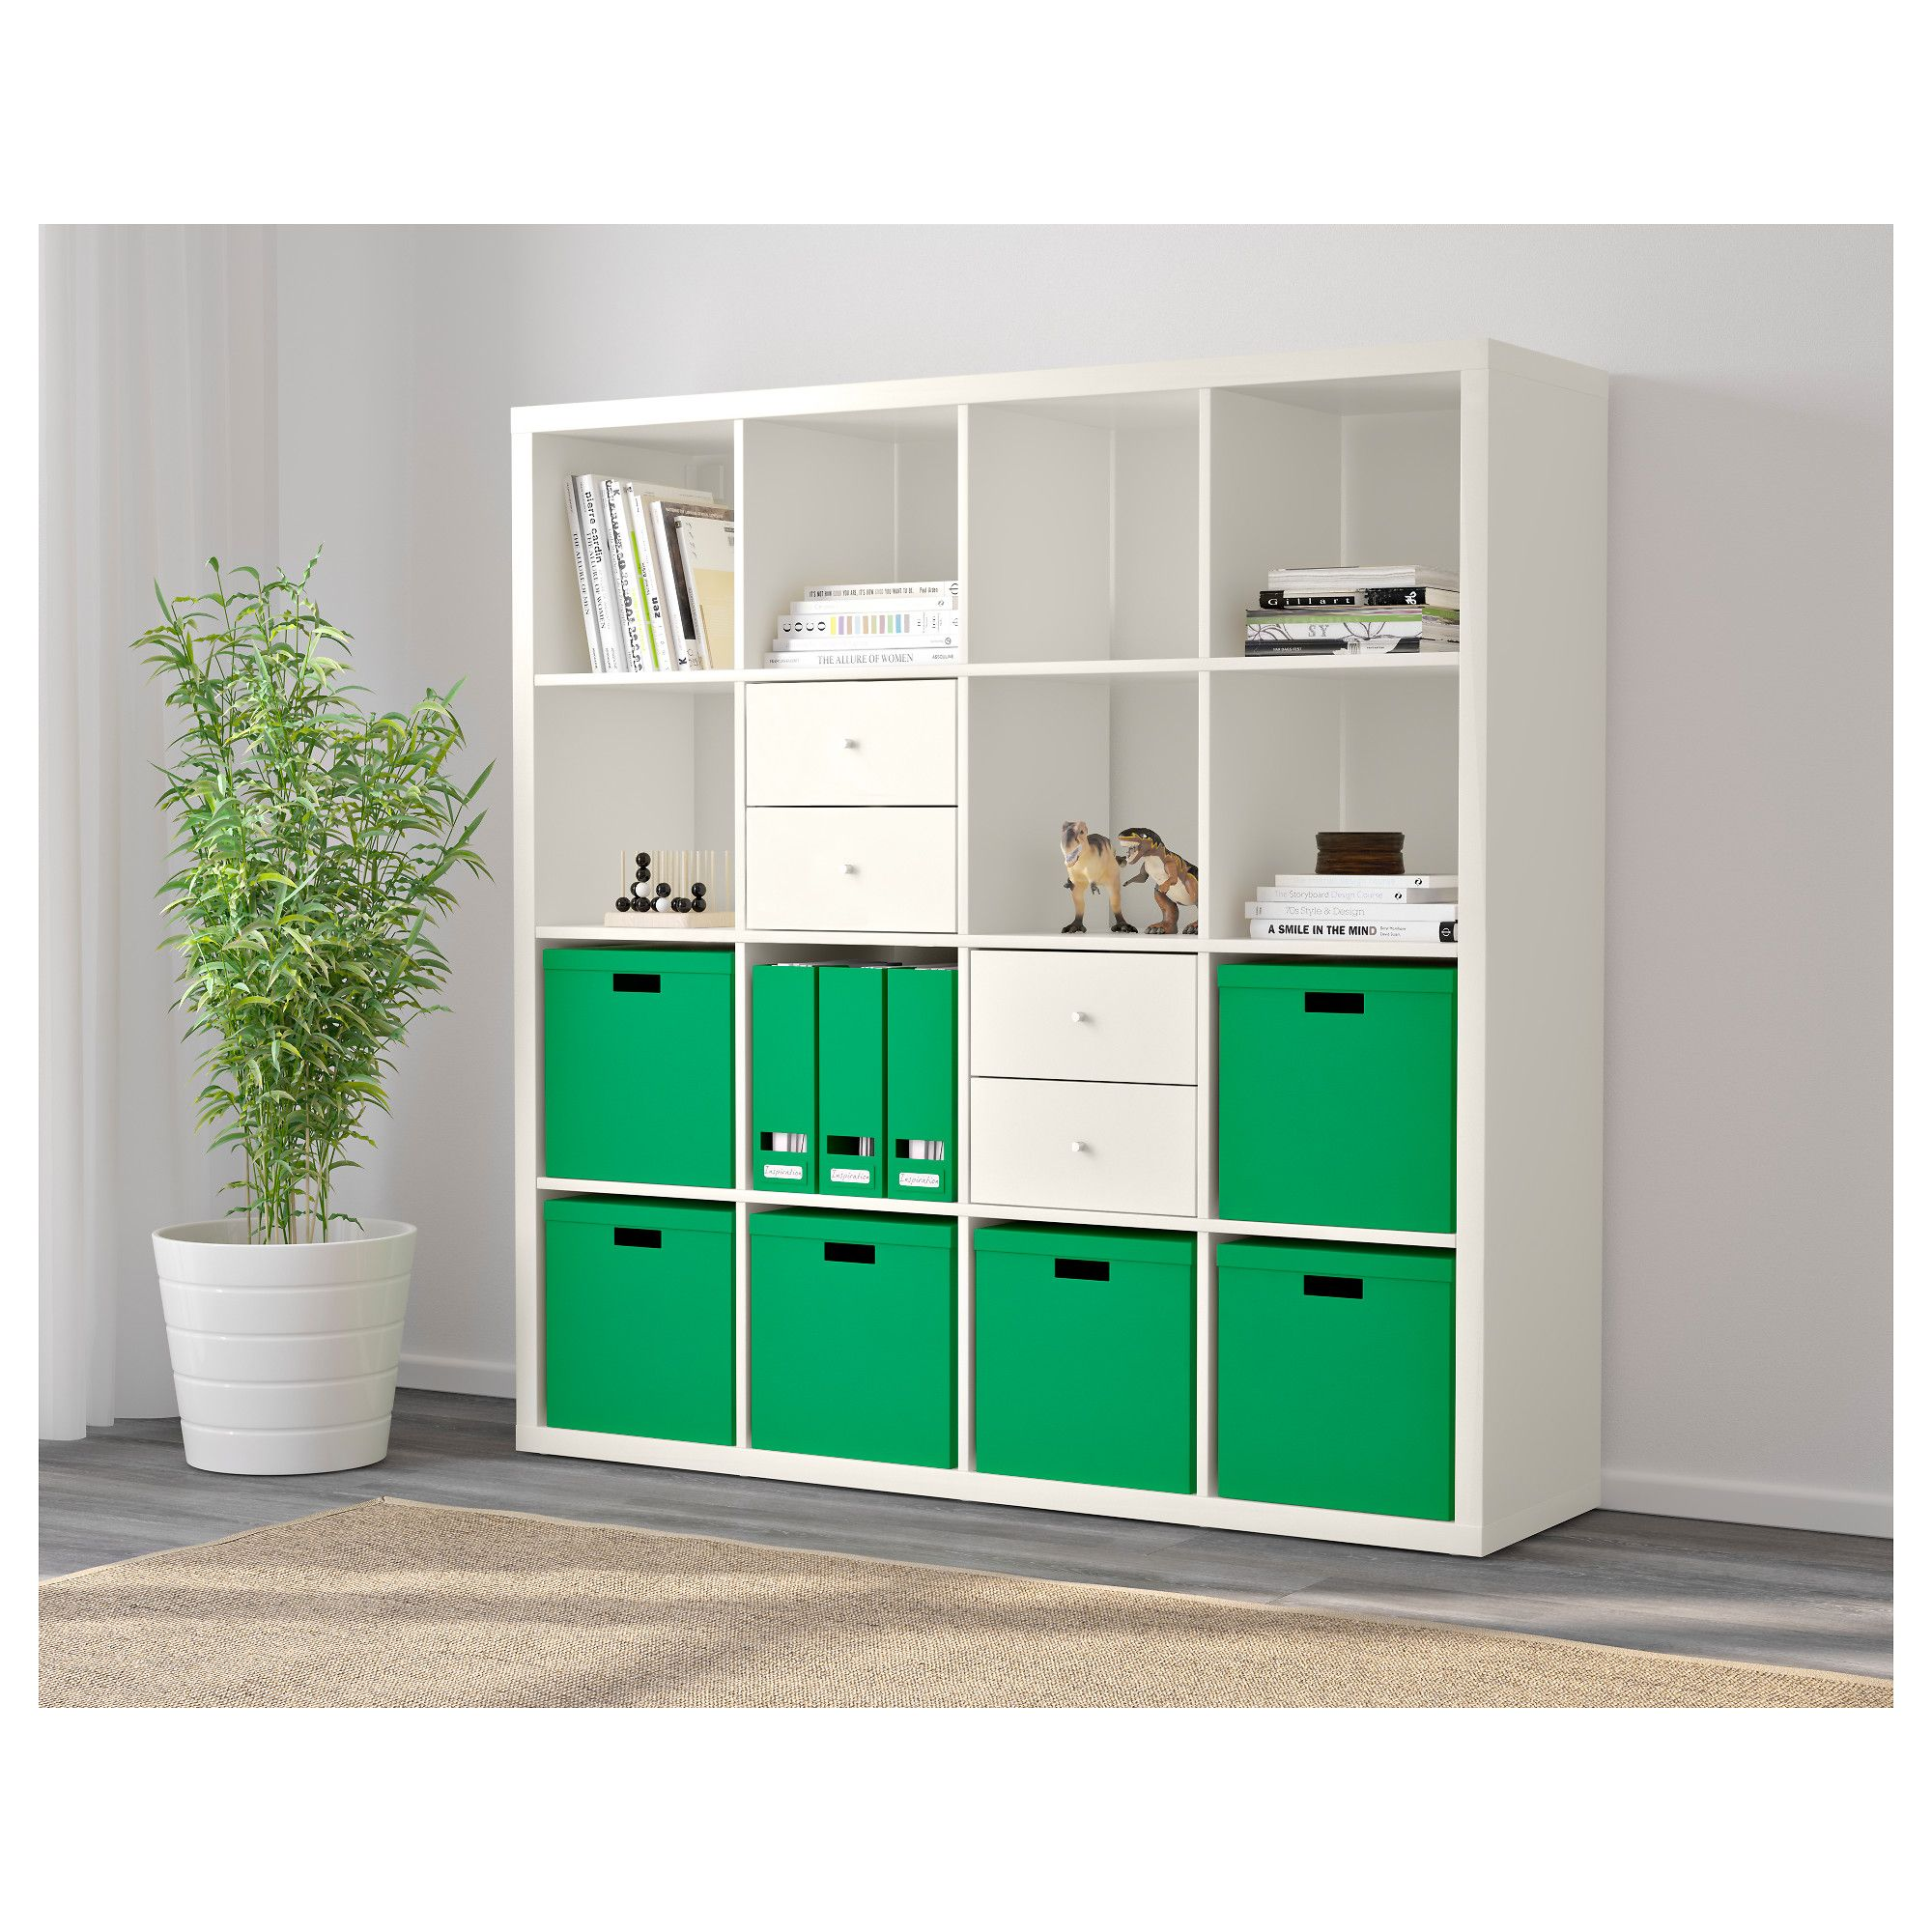 Kallax Shelving Unit White 147×147 Cm Kallax Shelving Unit  # Bibliotheque Expedit Ikea Occasion